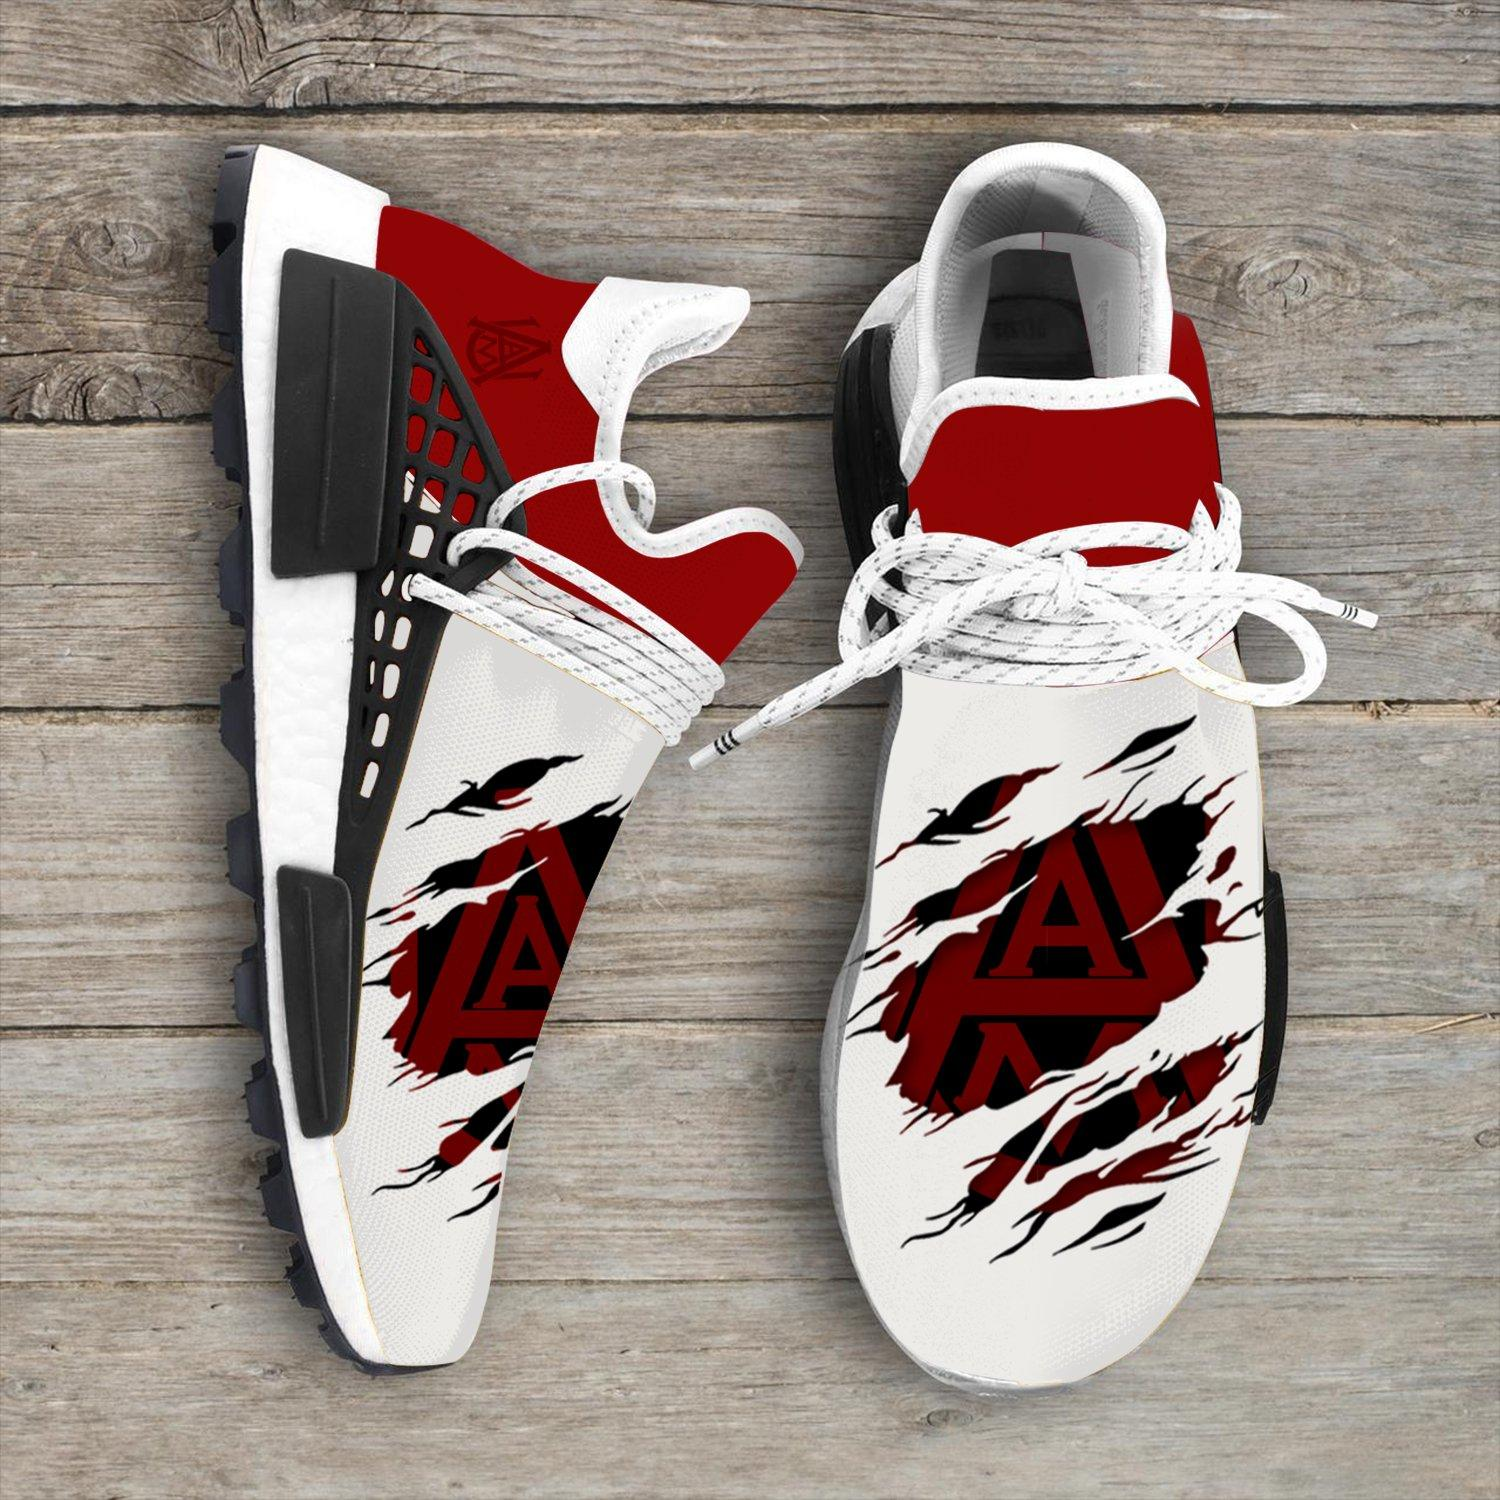 Alabama A&M Bulldogs NCAA Sport Teams NMD Human Race Sneakers Shoes 2020